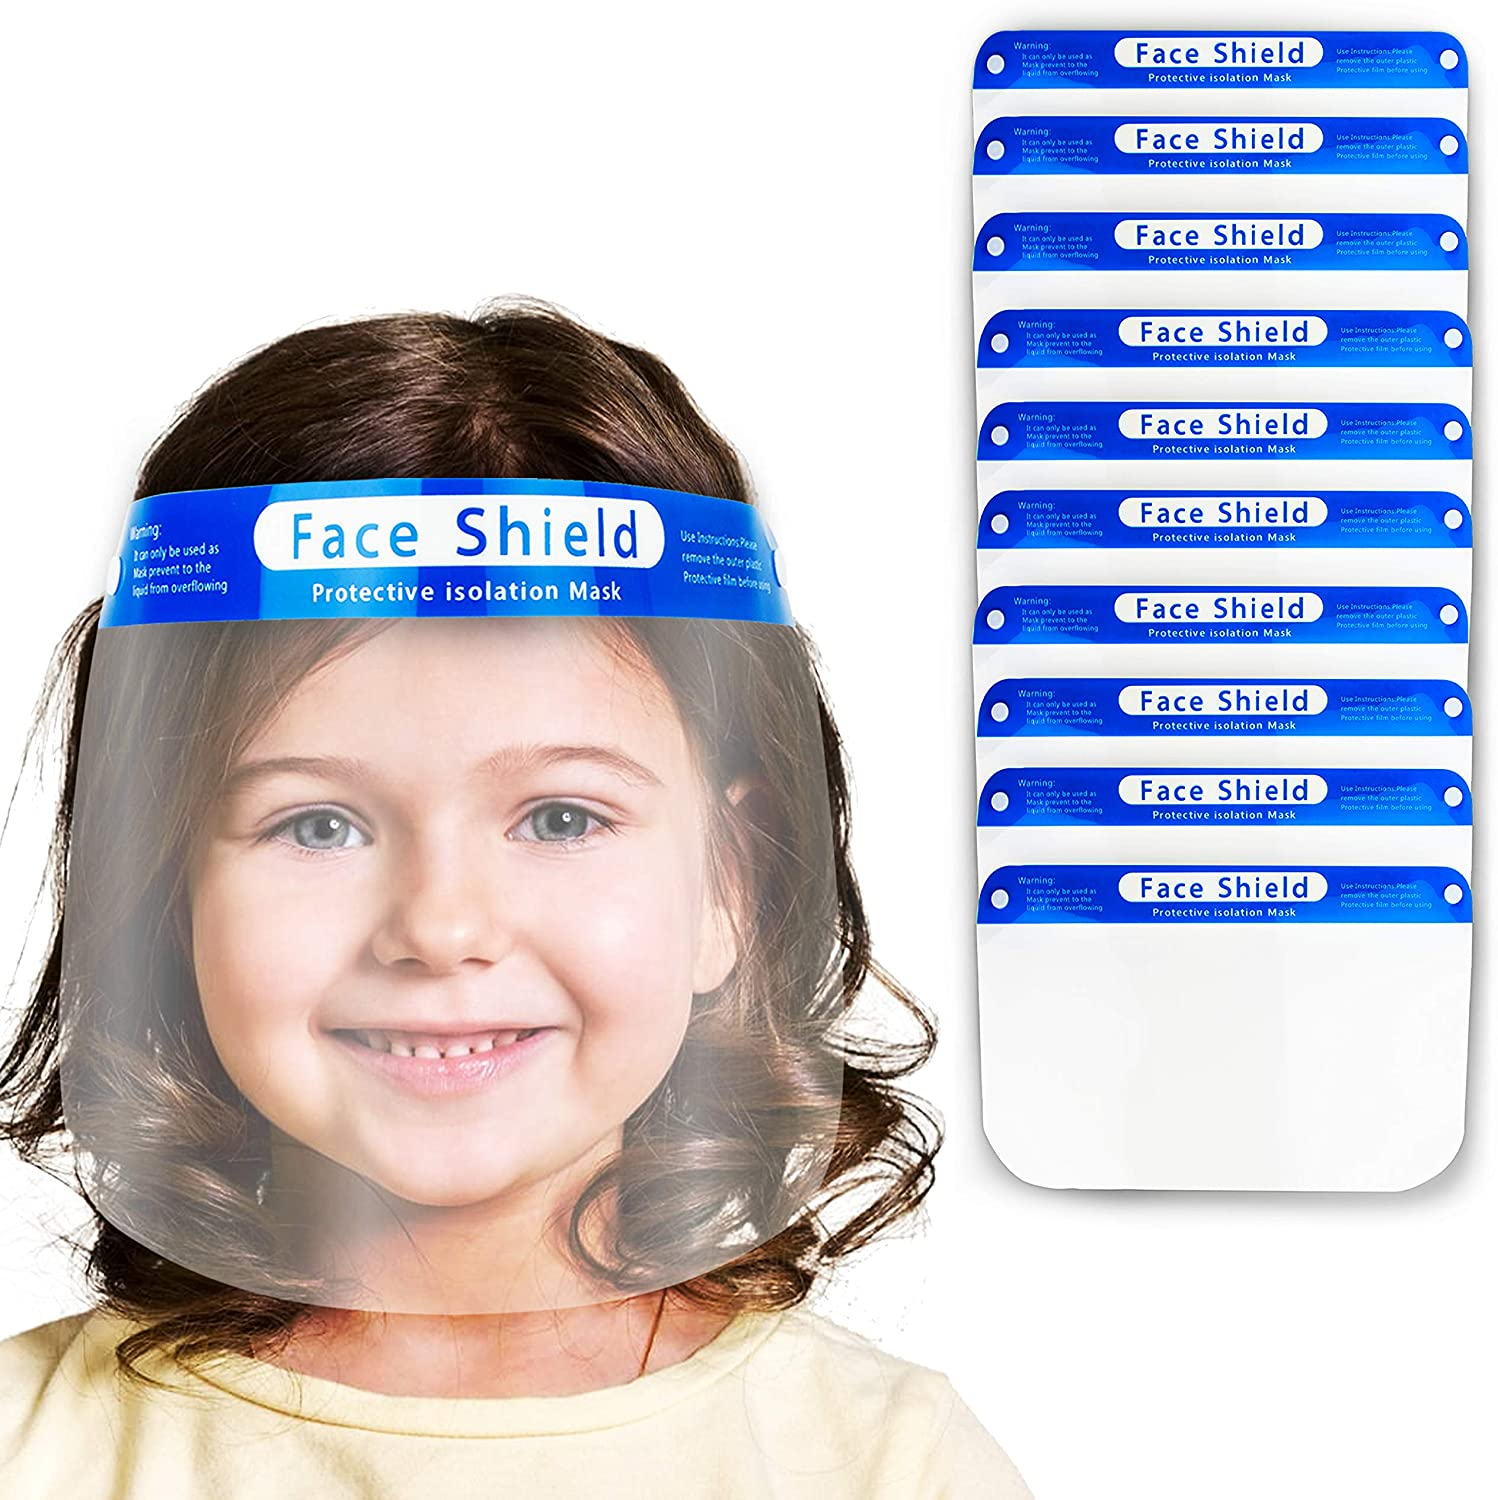 Washable Facial Cotton Covering Children Face Shield for Cycling Travel Outdoors BEIOUTU Pik-Achu Kids Reusable